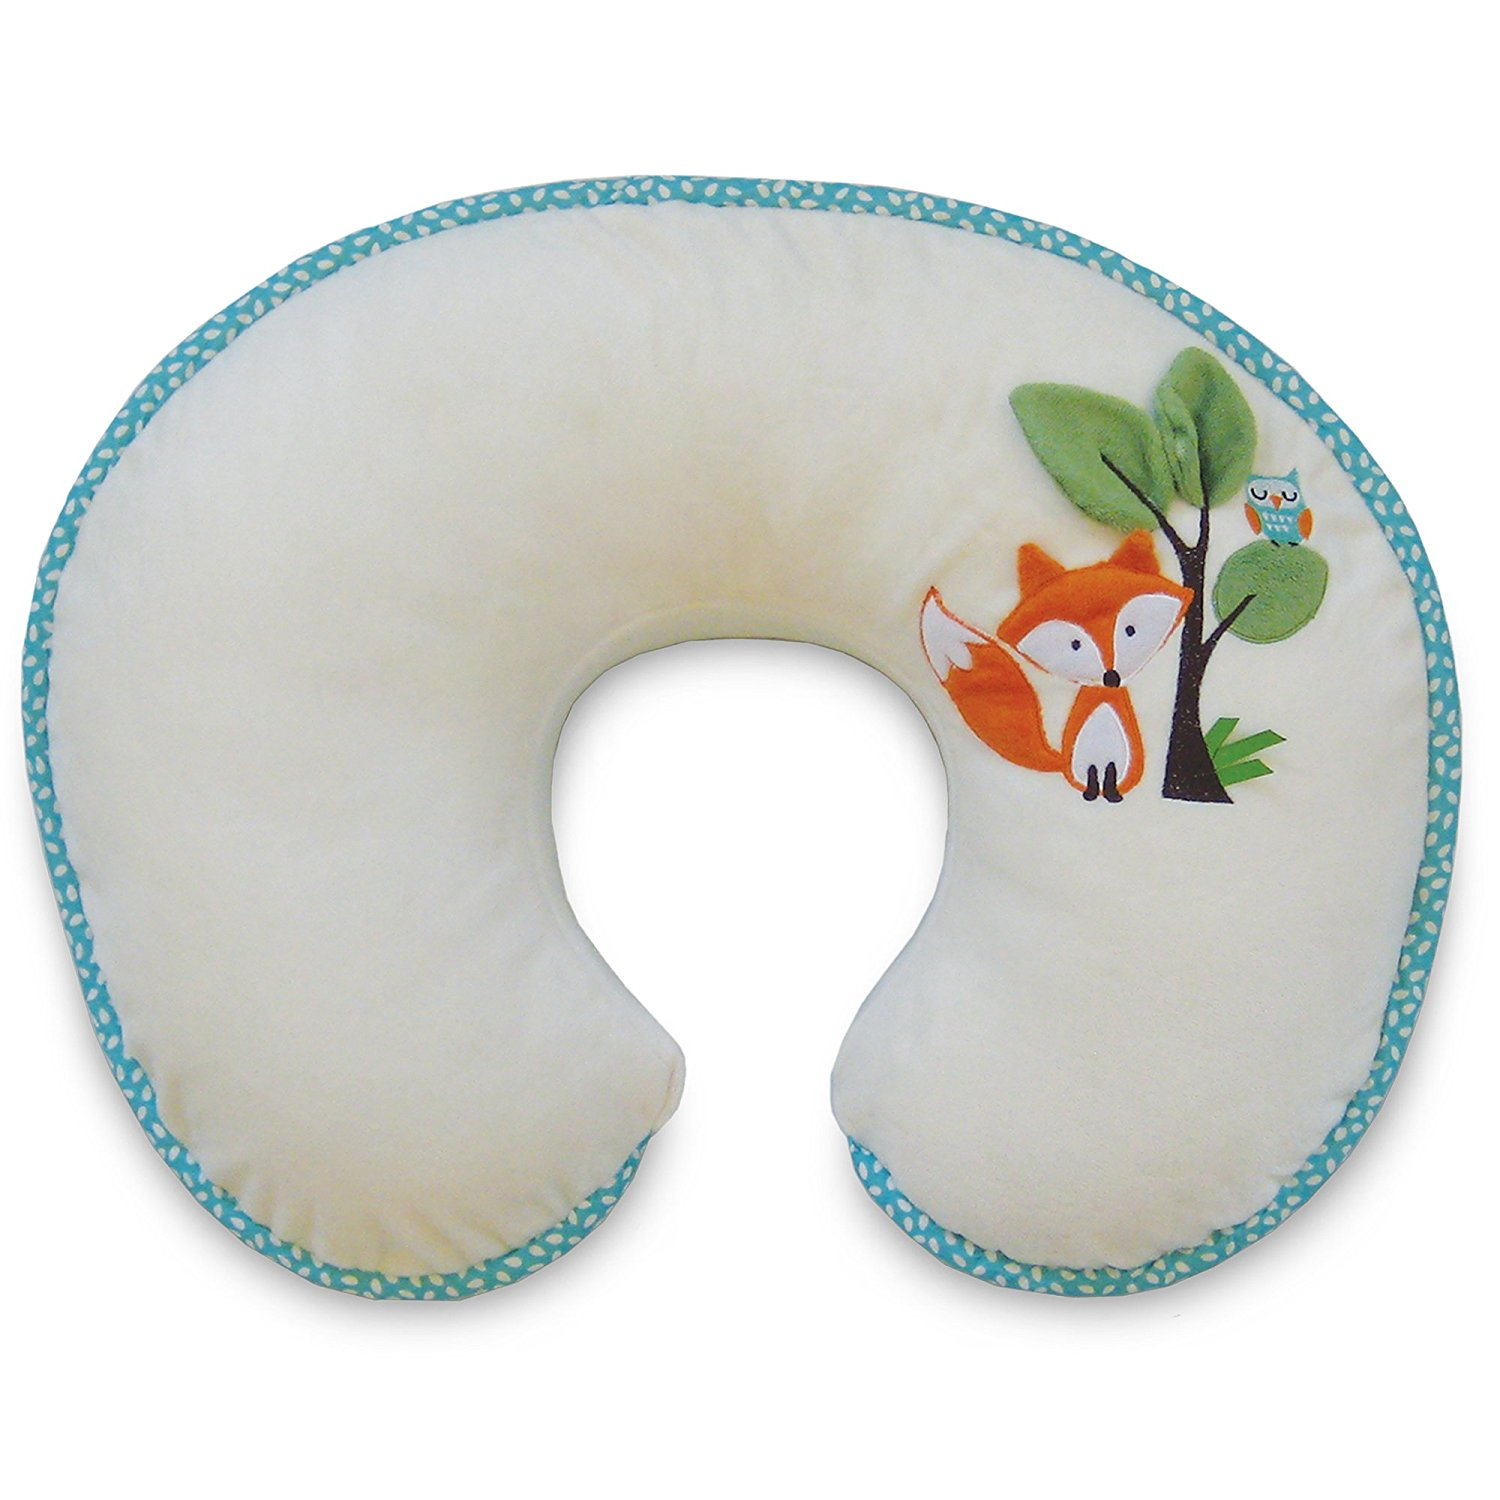 Is-a-Nursing-Pillow-Necessary-for-Breastfeeding